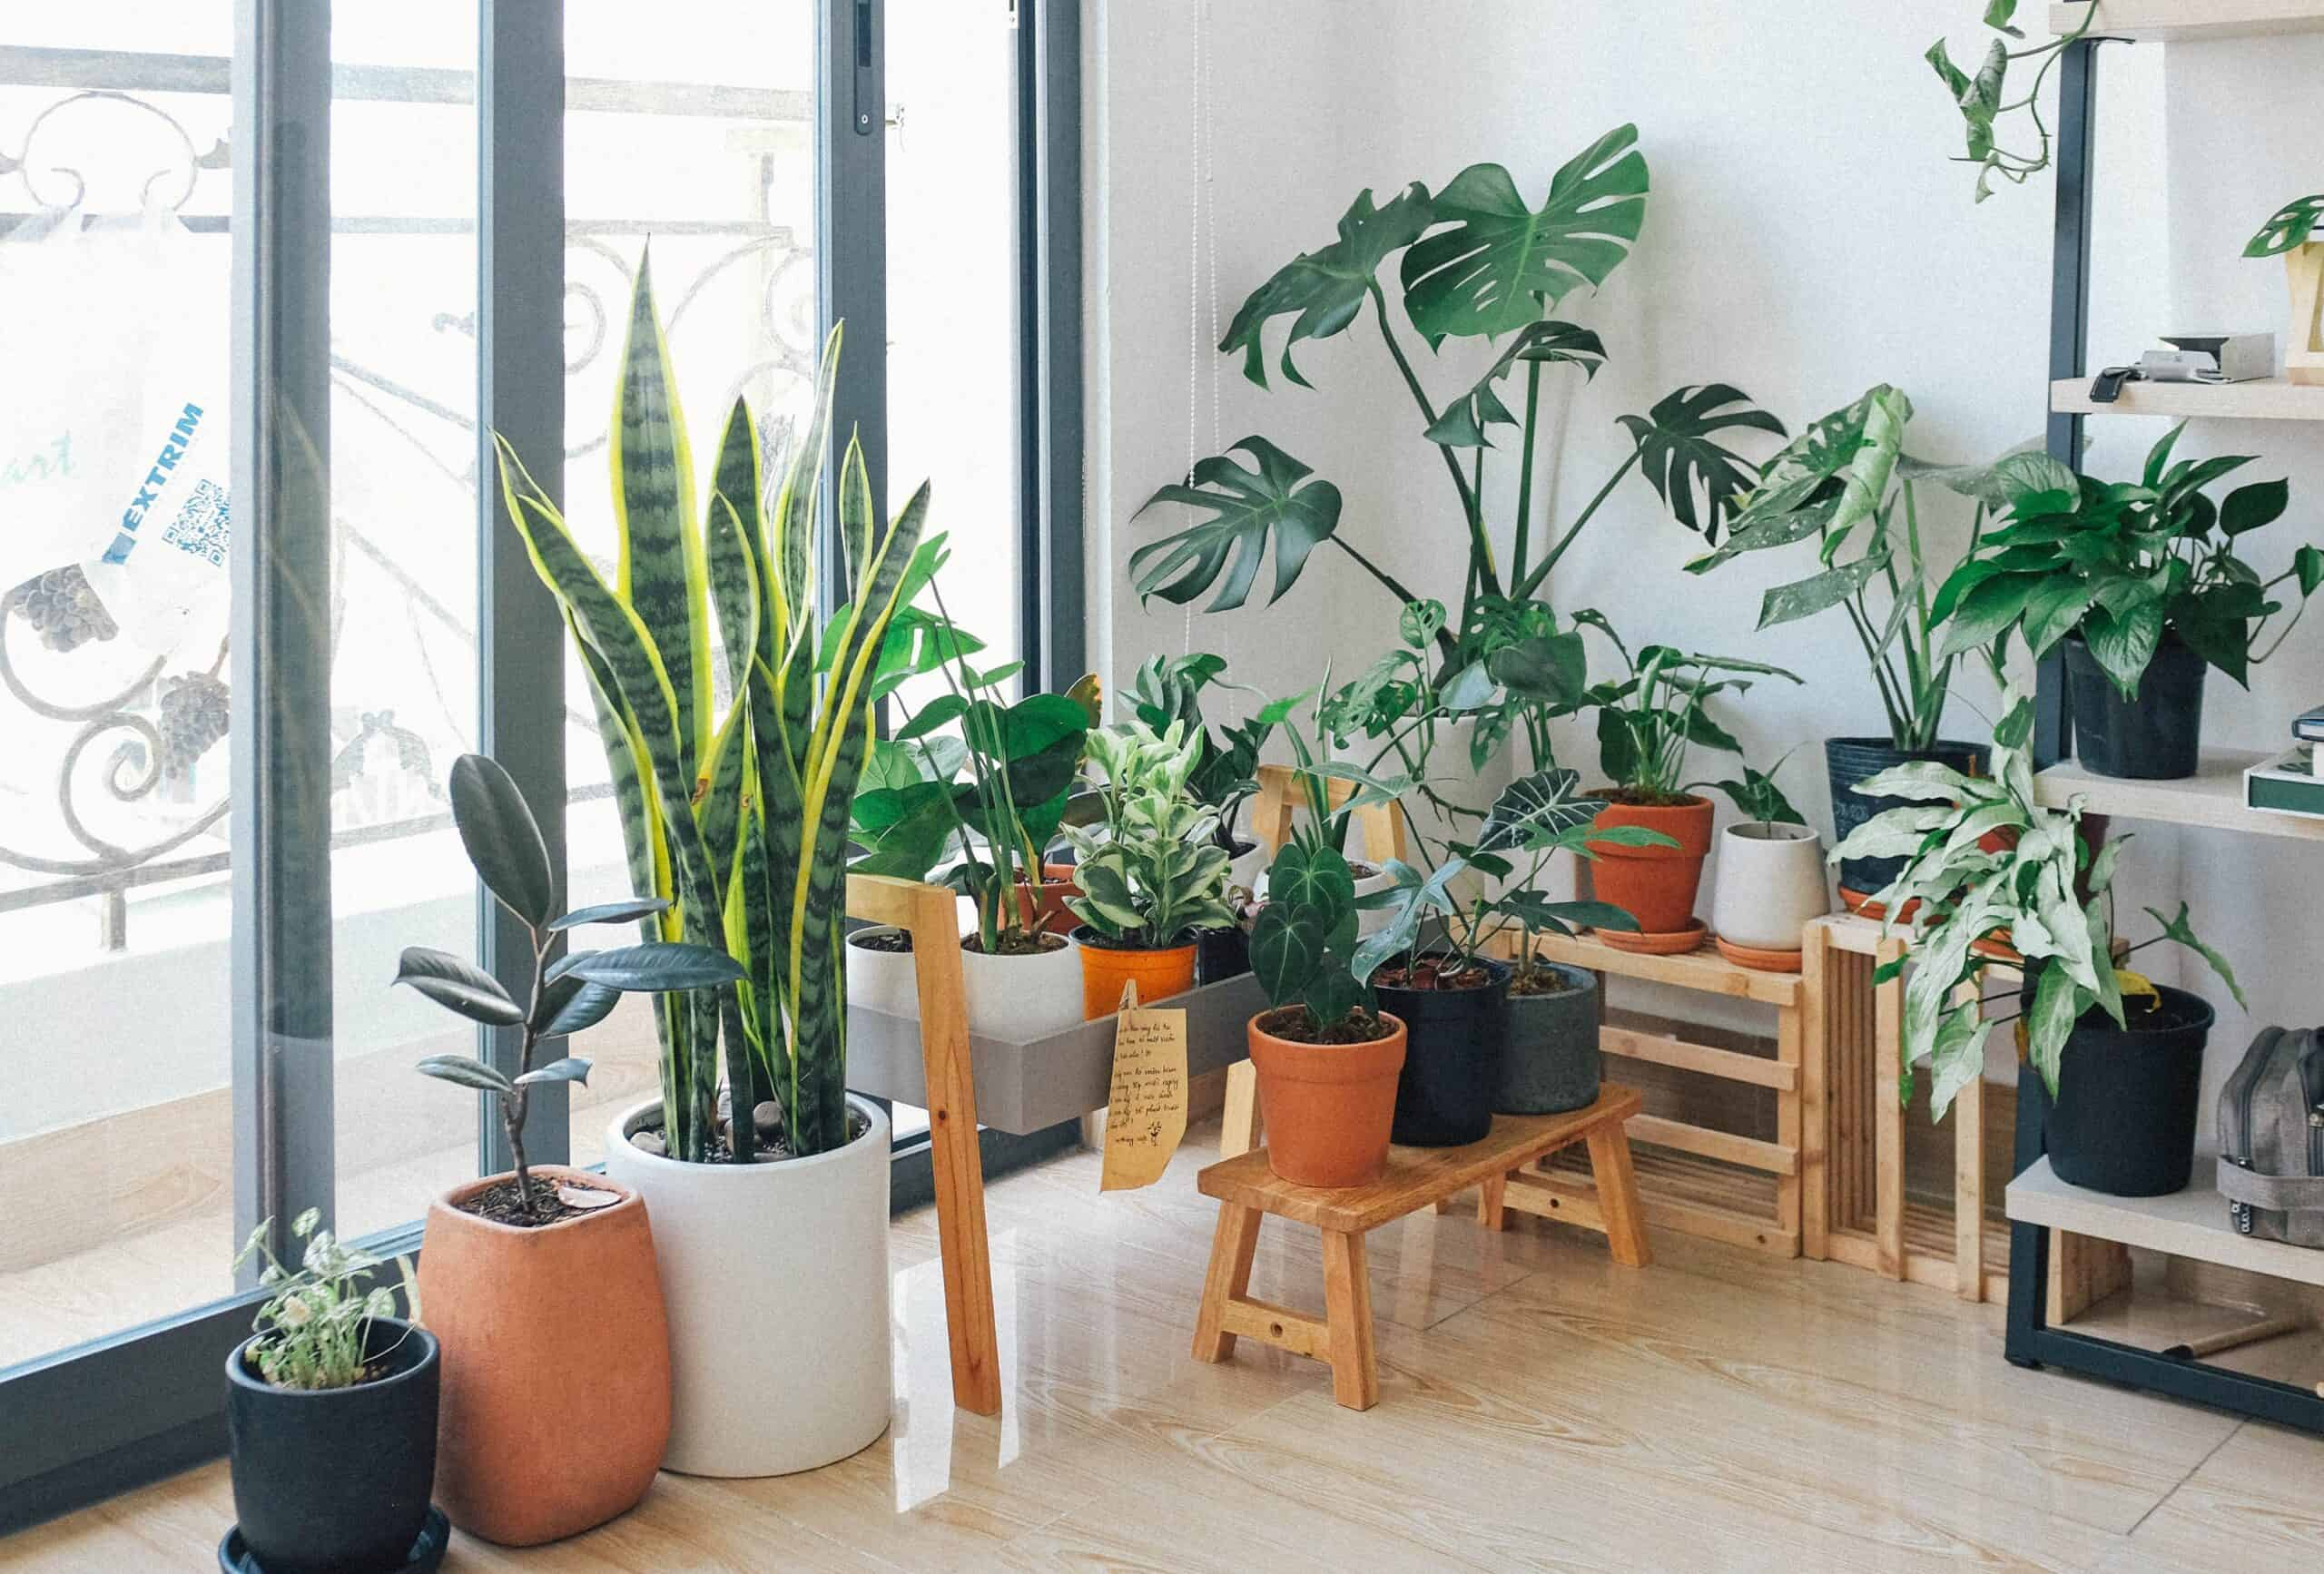 Best Automatic Watering System for Indoor Plants